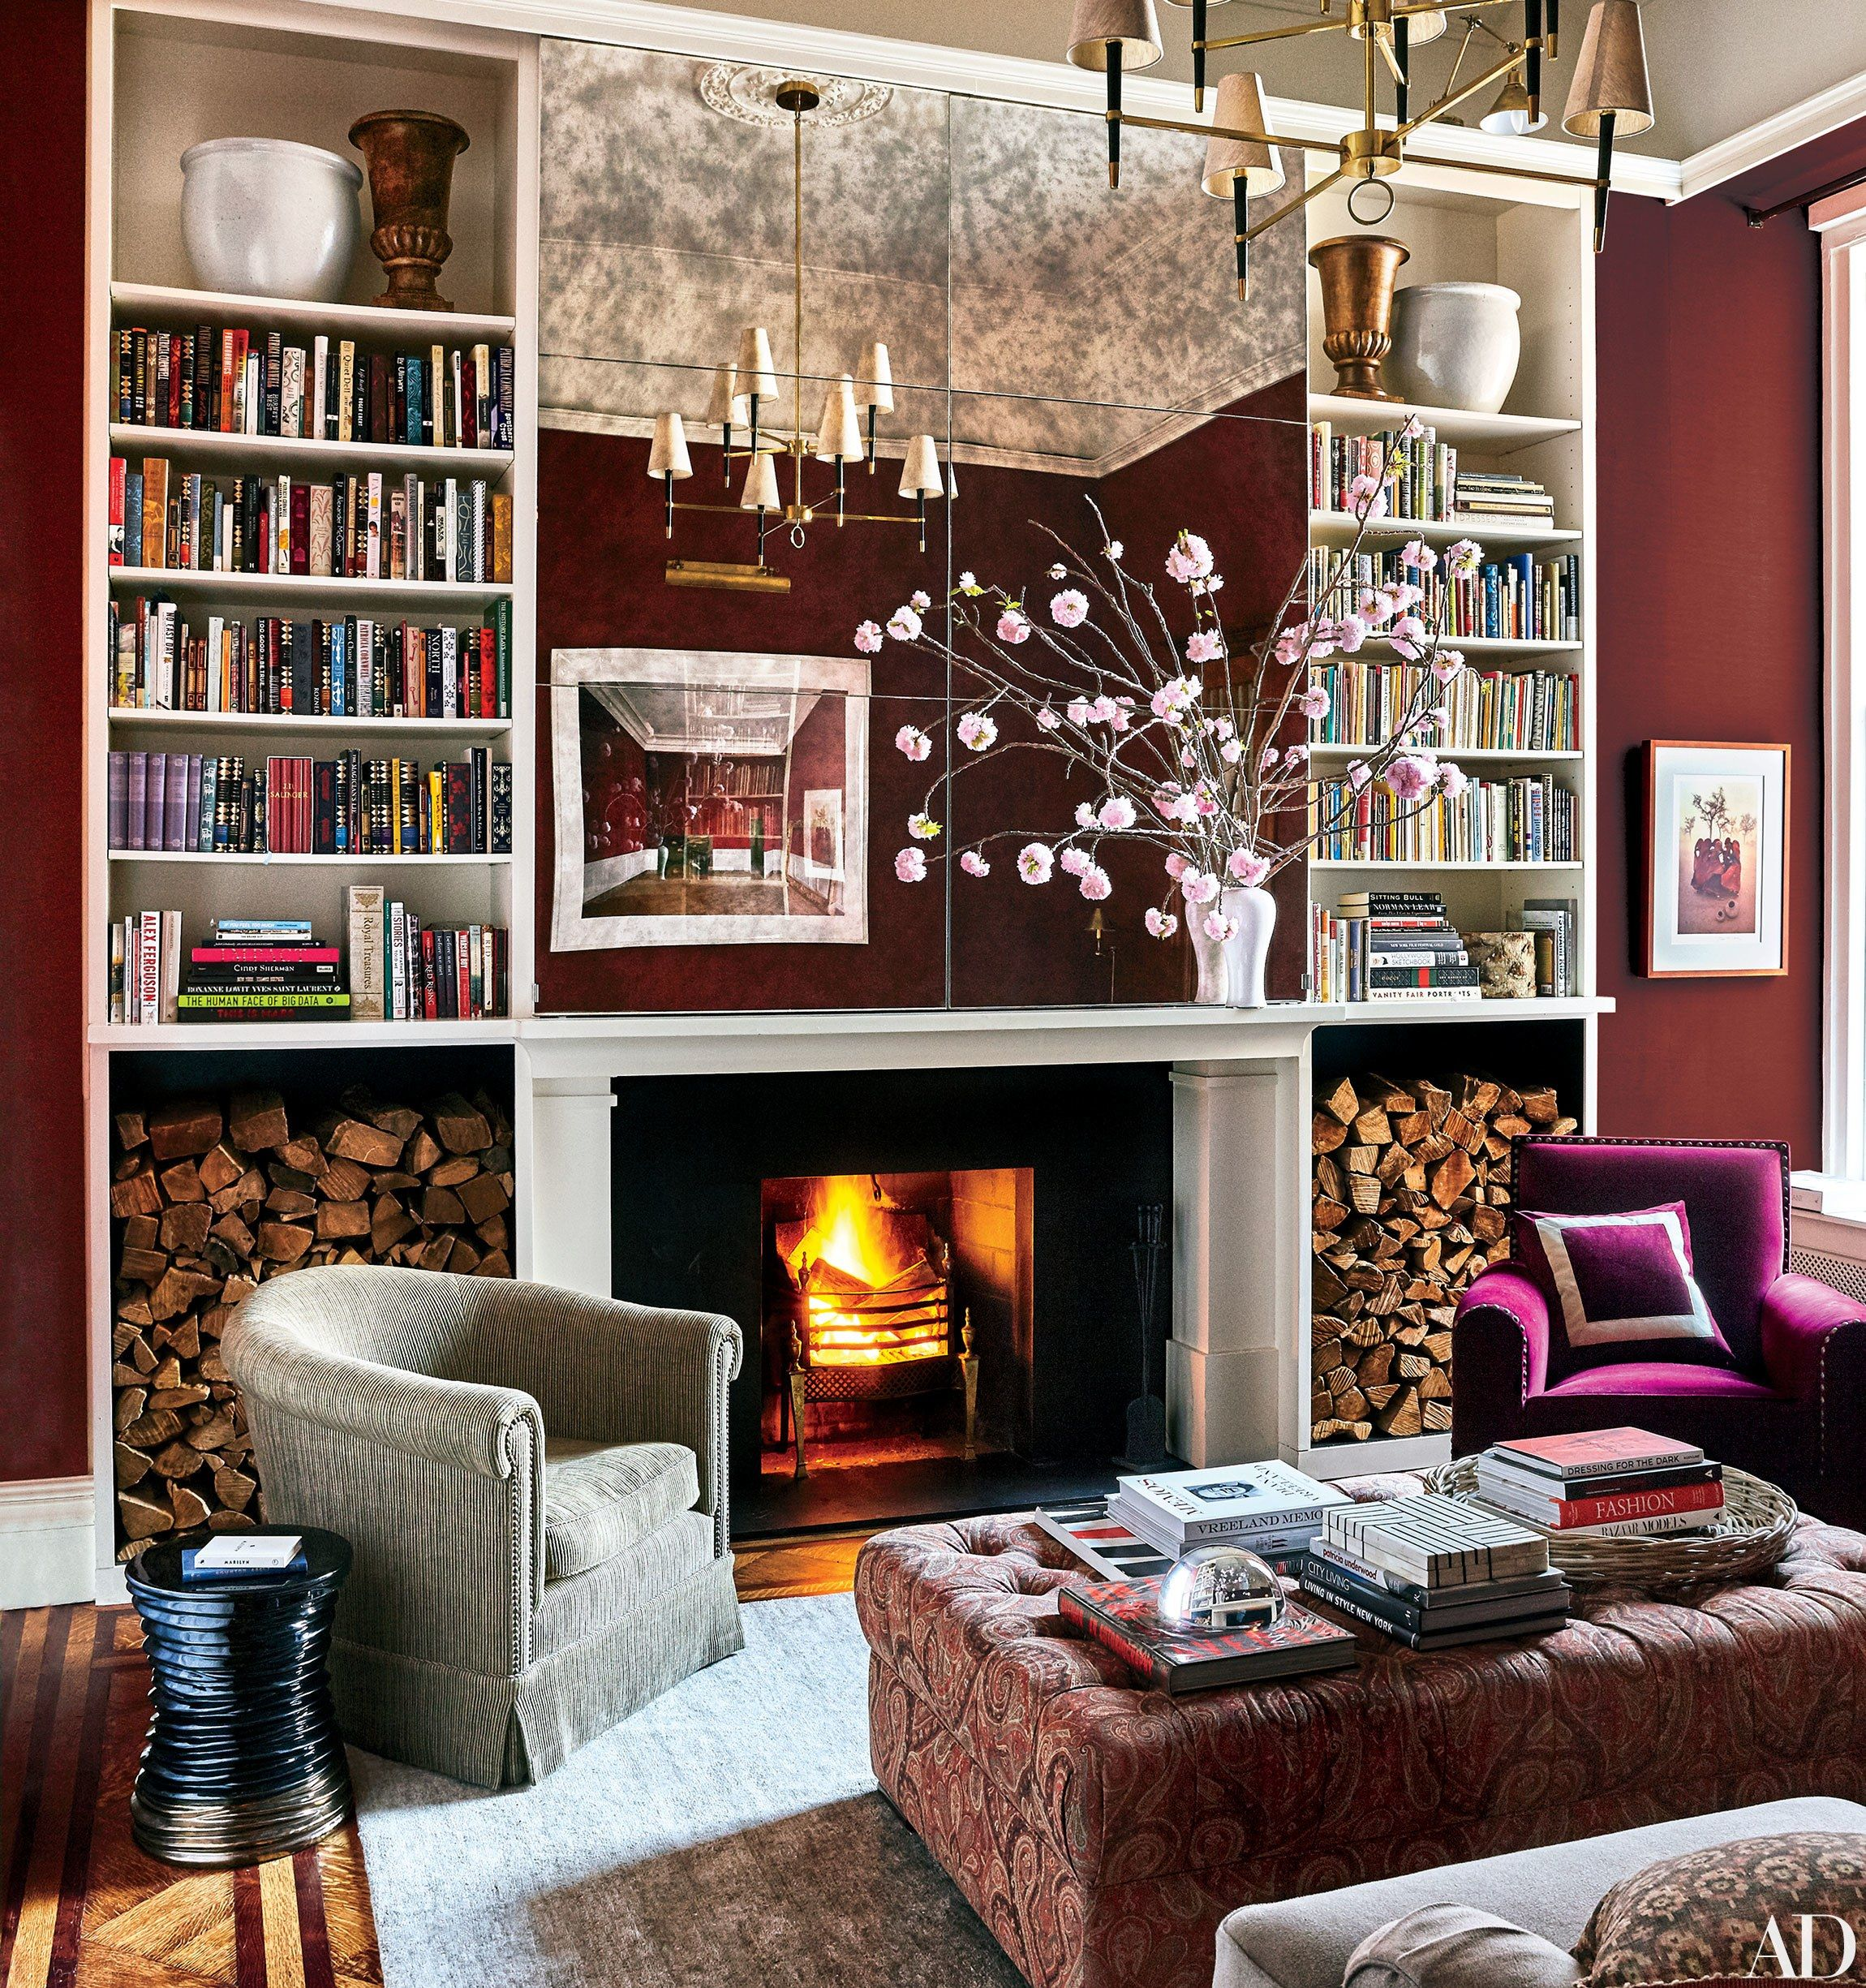 Fall winter 2016 2017 color trends according to pantone for Apartment interior design trends 2017